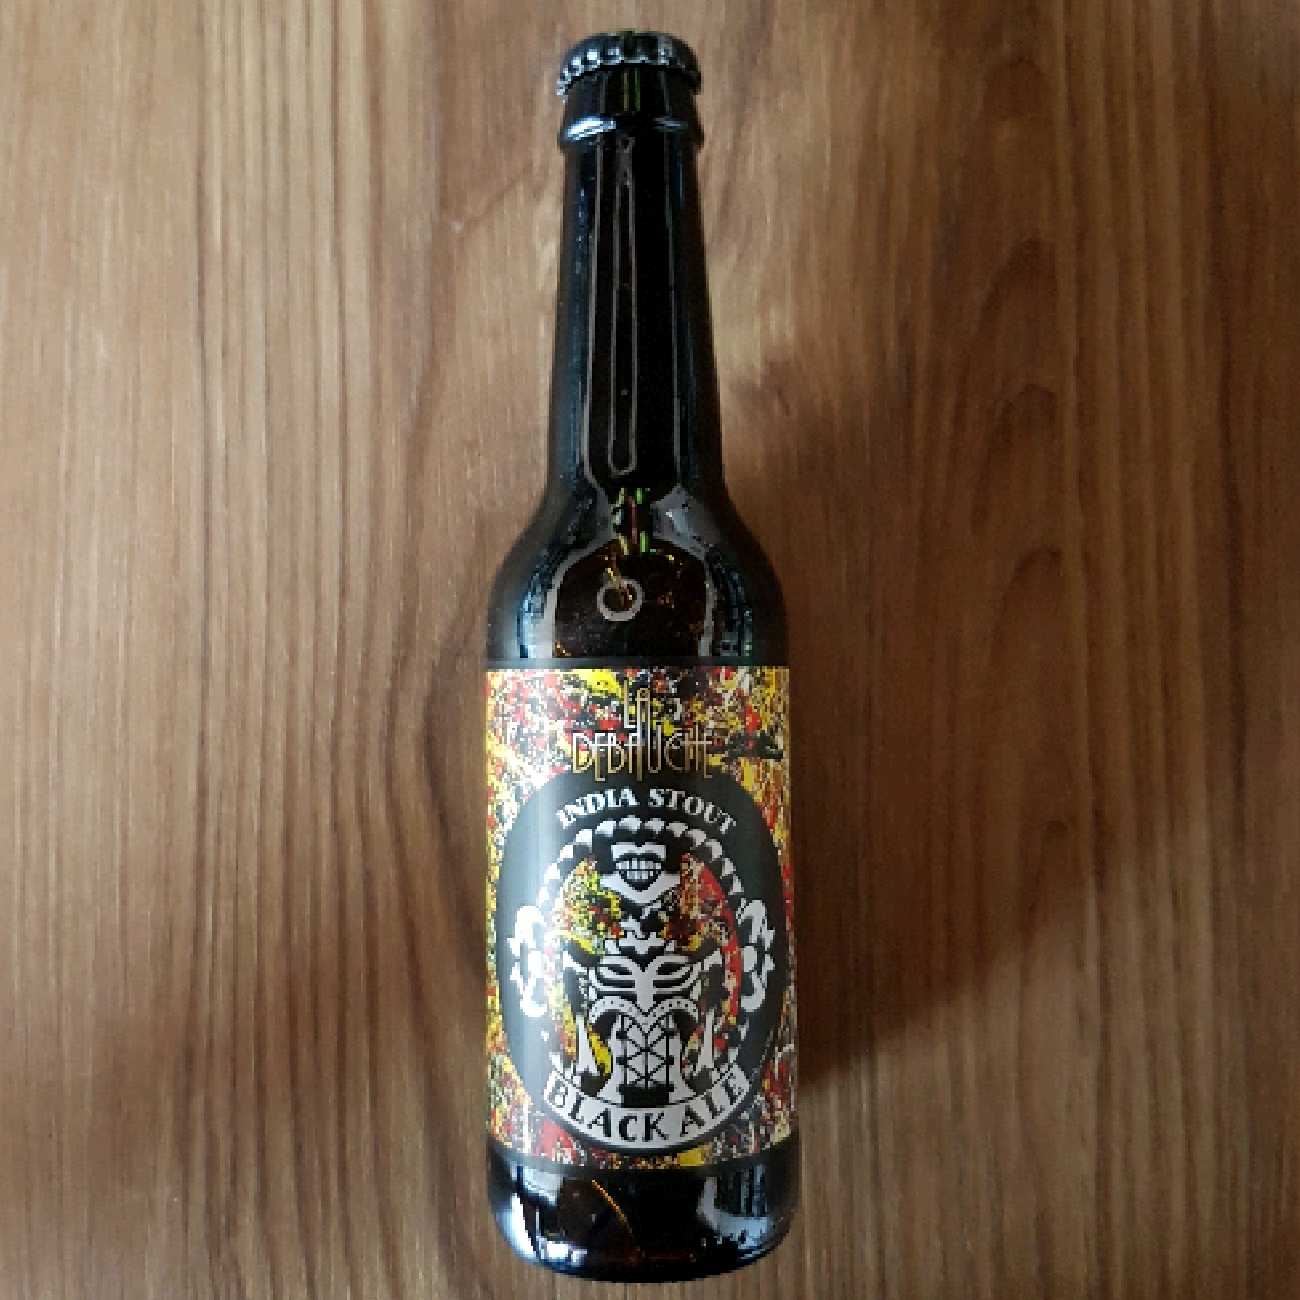 La Debauche Black India Stout